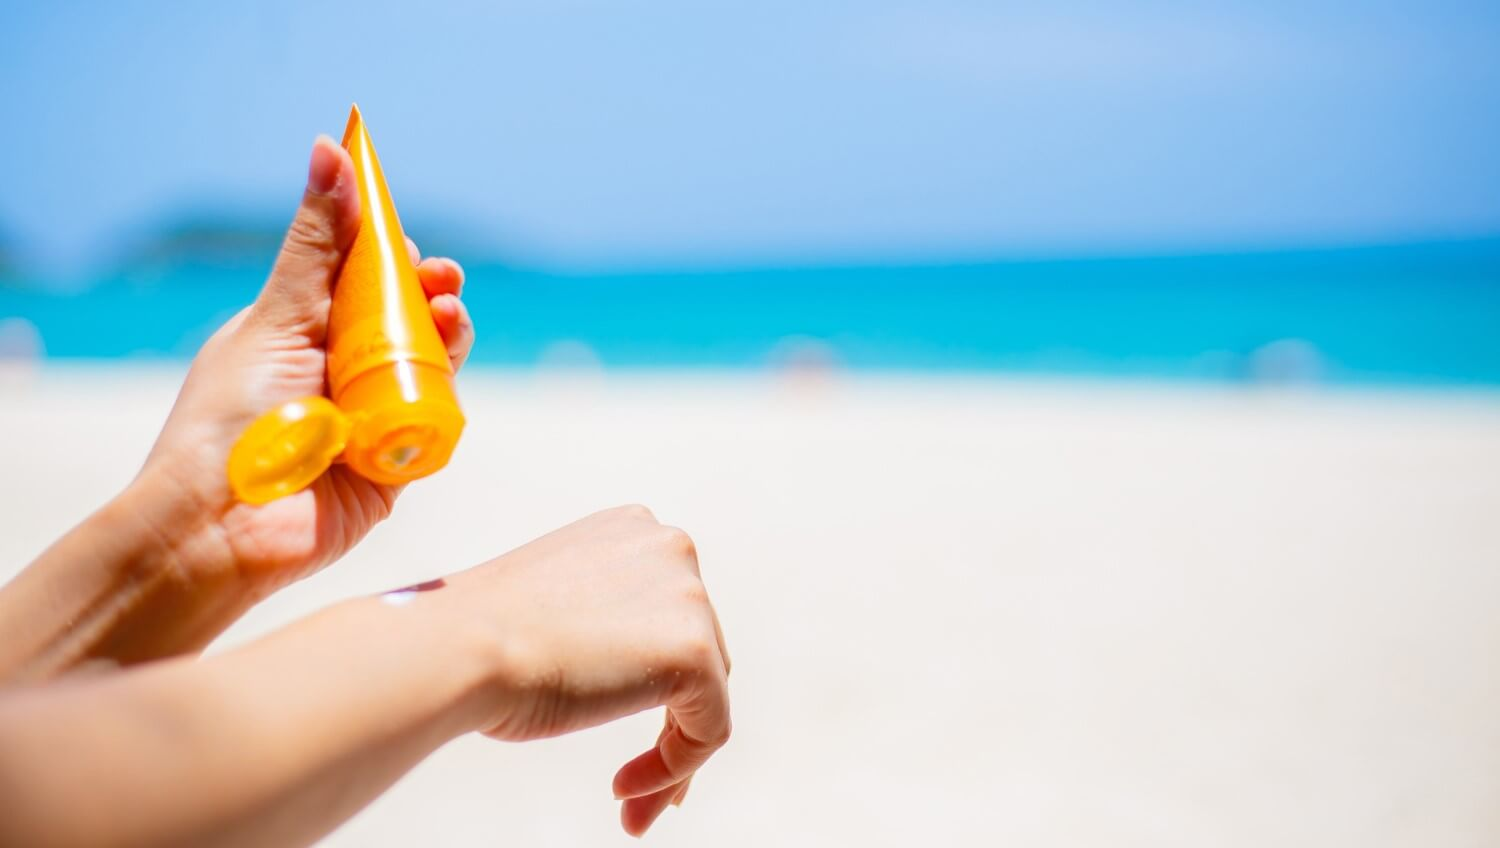 Best sunscreens for UAE weather: For Men, Women, and Kids<div><span style='color:#a0a0a0;font-size:16px;text-transform:none;line-height:1.1'>Avoid those harmful UV rays and give love to your skin</span></div>